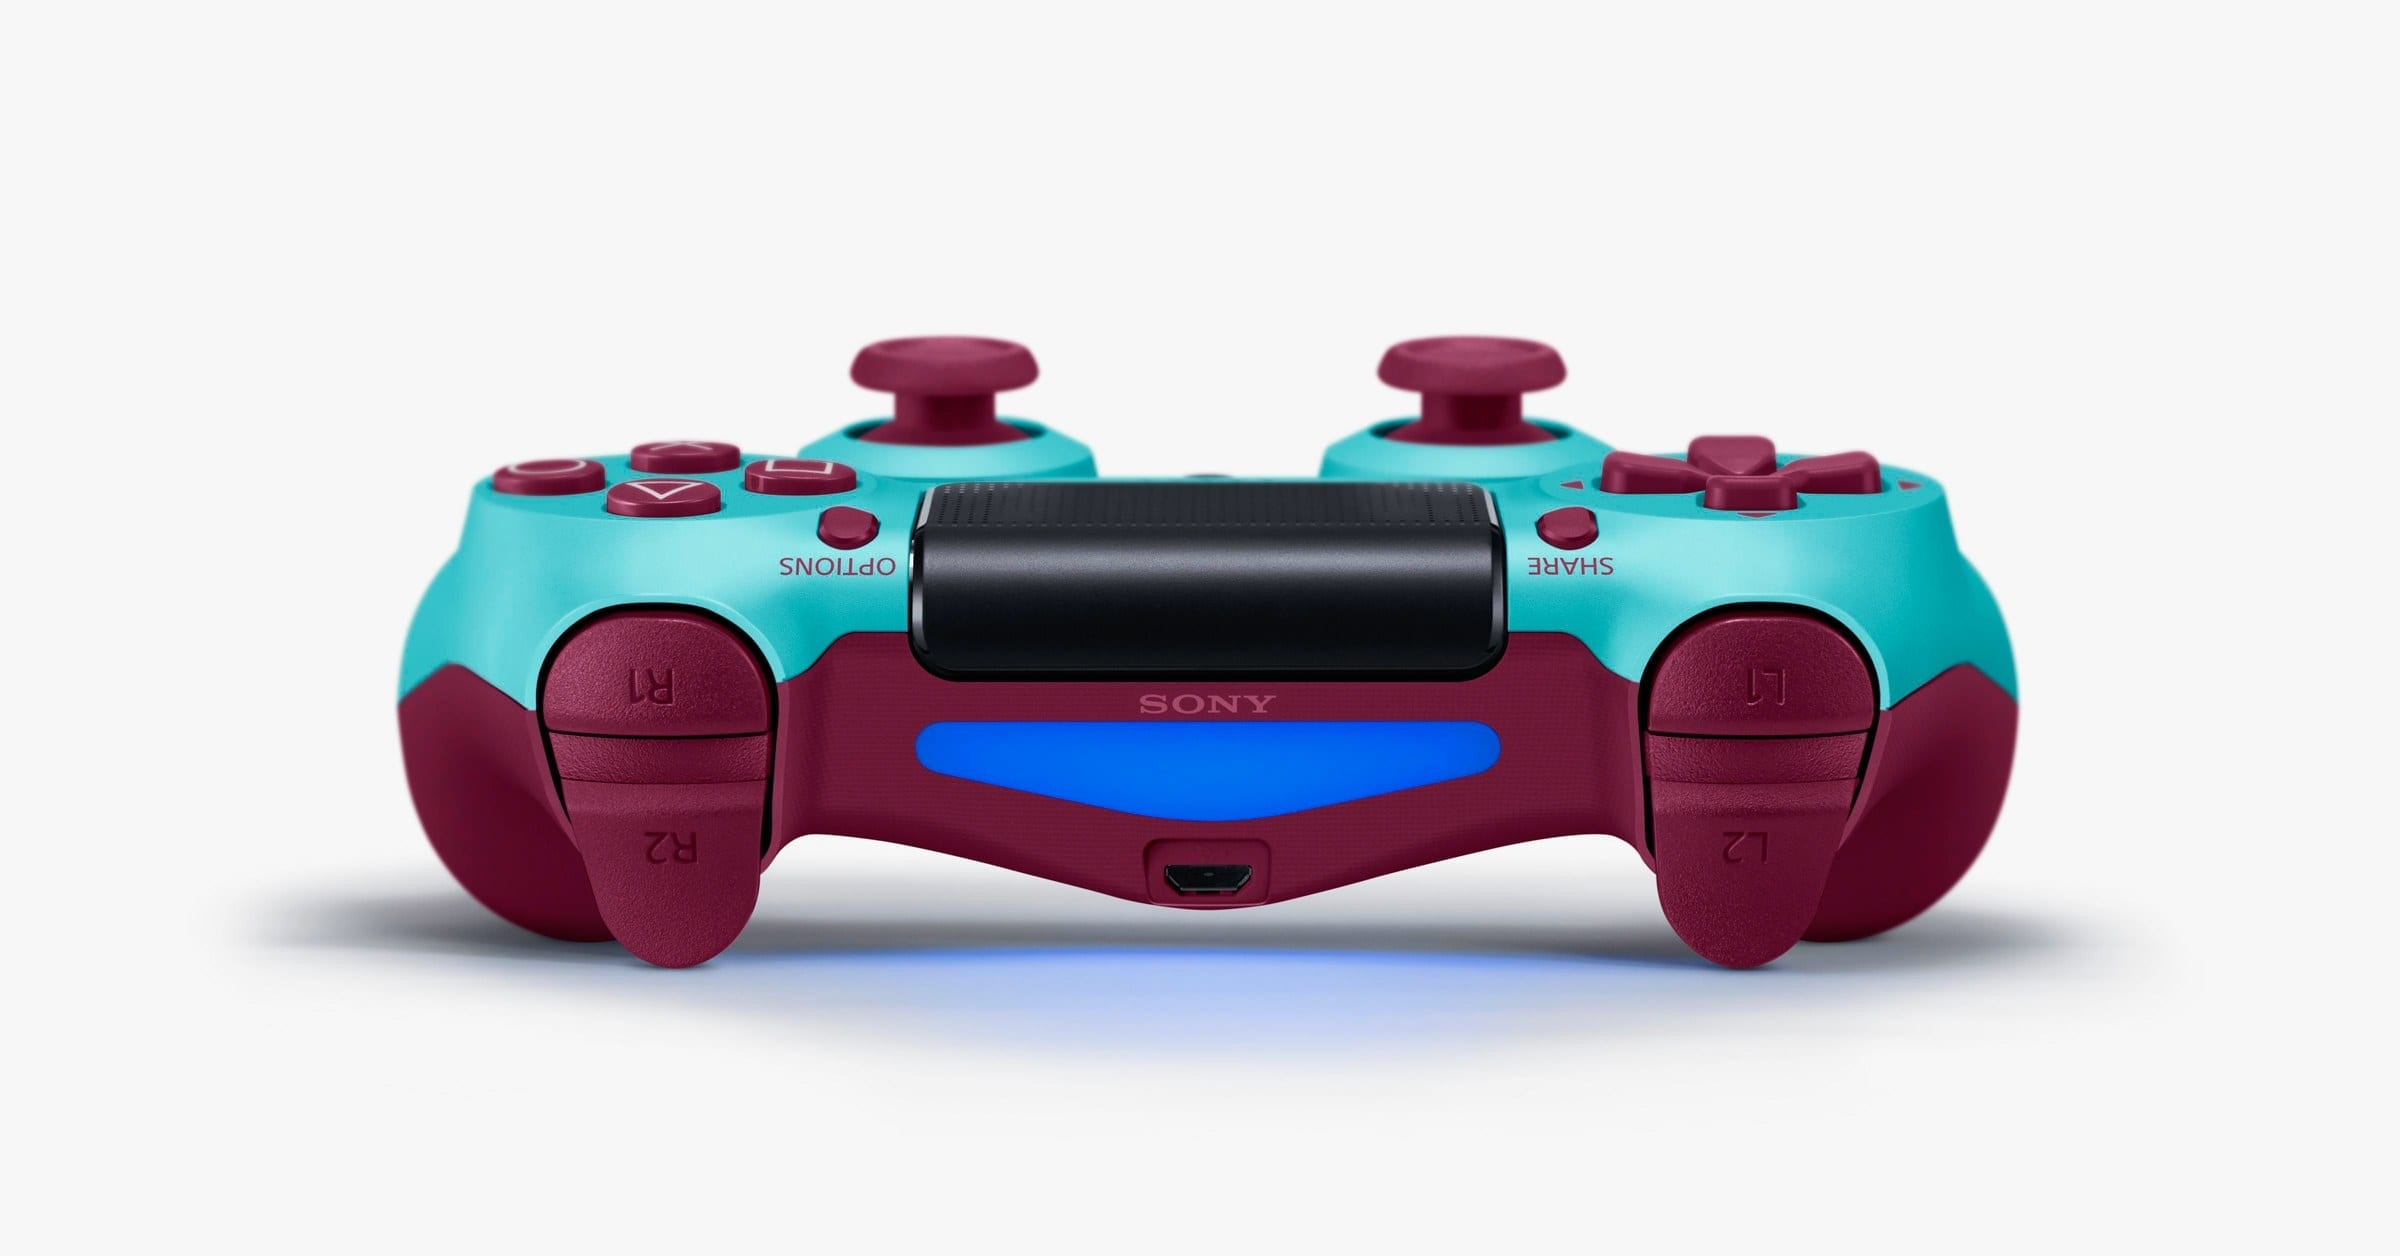 PS4 Controller - Guide: Buying Playstation 4 in Pakistan, Games and Accessories from Trusted Sellers